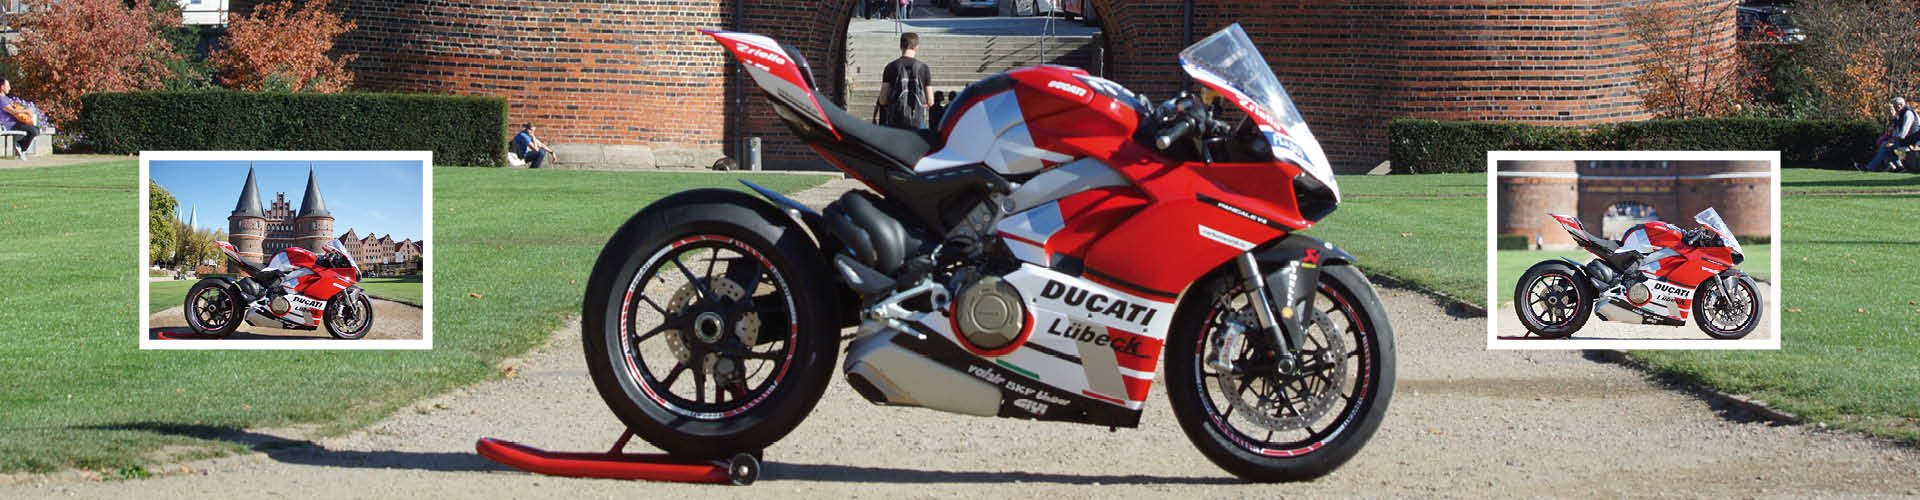 Ducati Panigale V4 design by Carbonworld